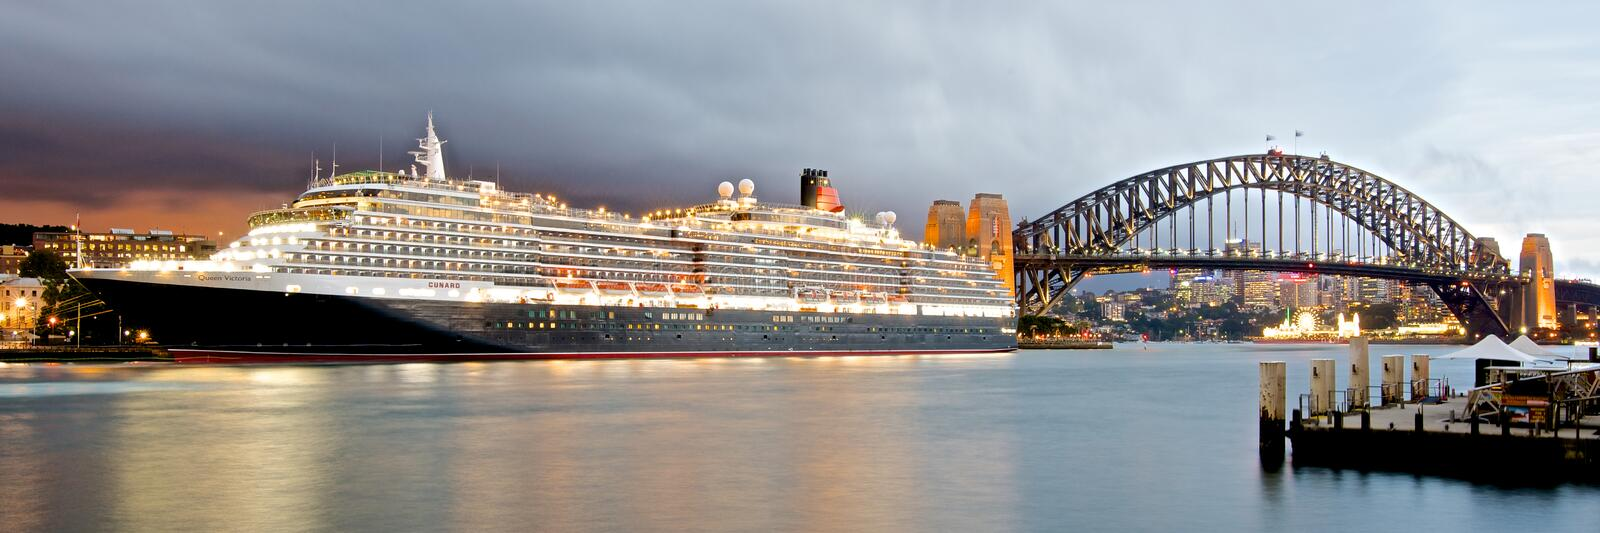 Cunard's Queen Victoria at the International Passenger Terminal near the Sydney Harbour Bridge royalty free stock photo